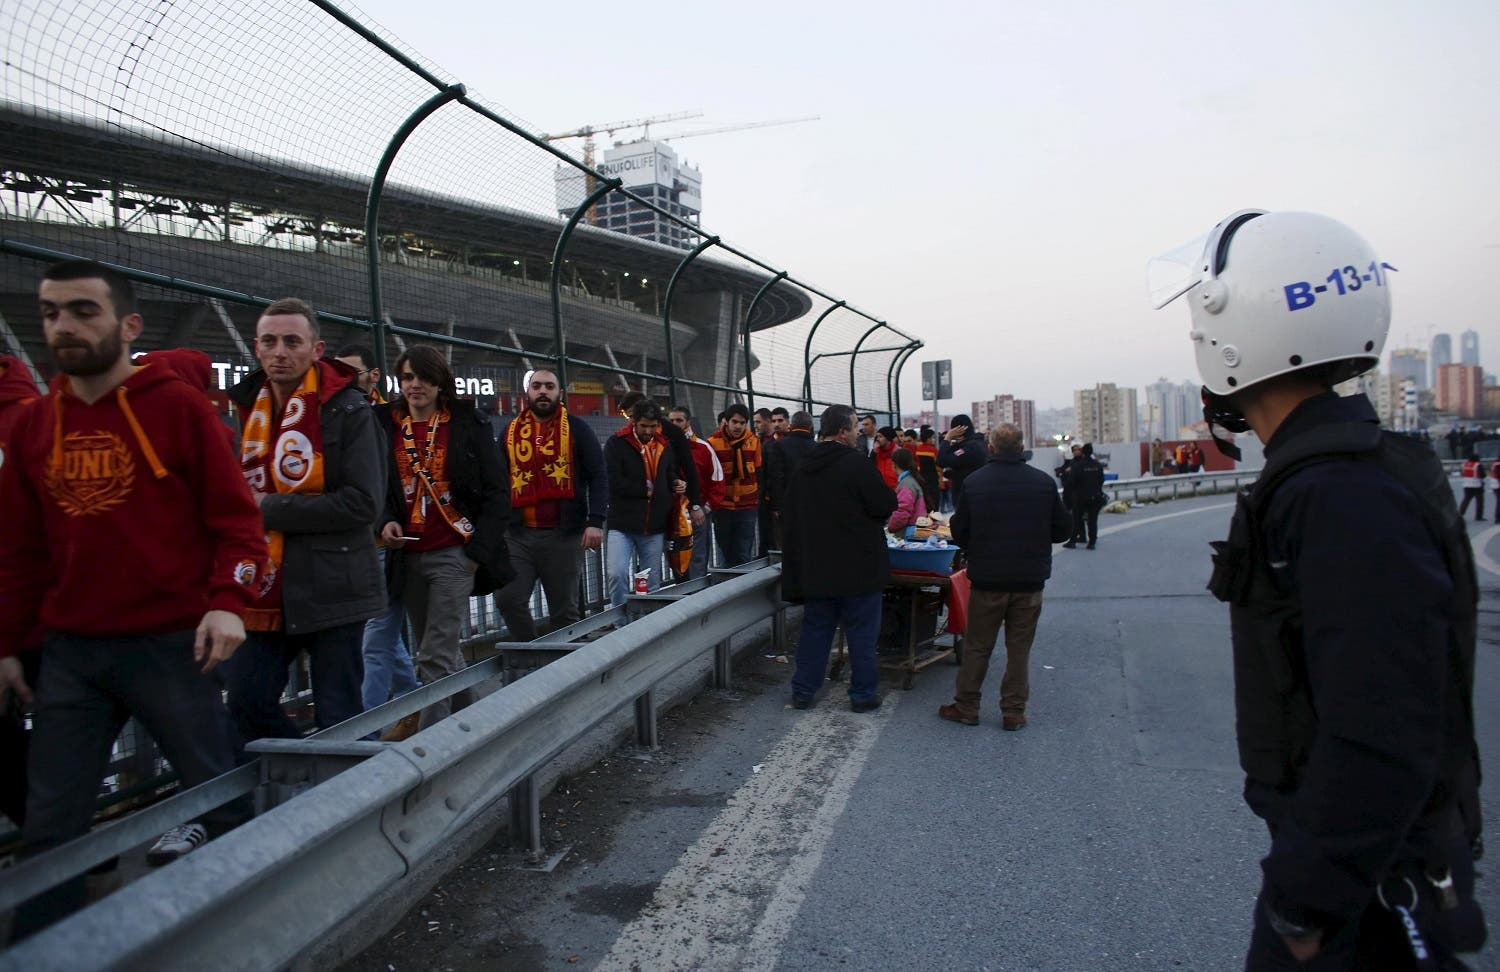 A riot police officer stands guard as Galatasaray soccer fans leave from the Turk Telekom Arena in Istanbul. (Reuters)